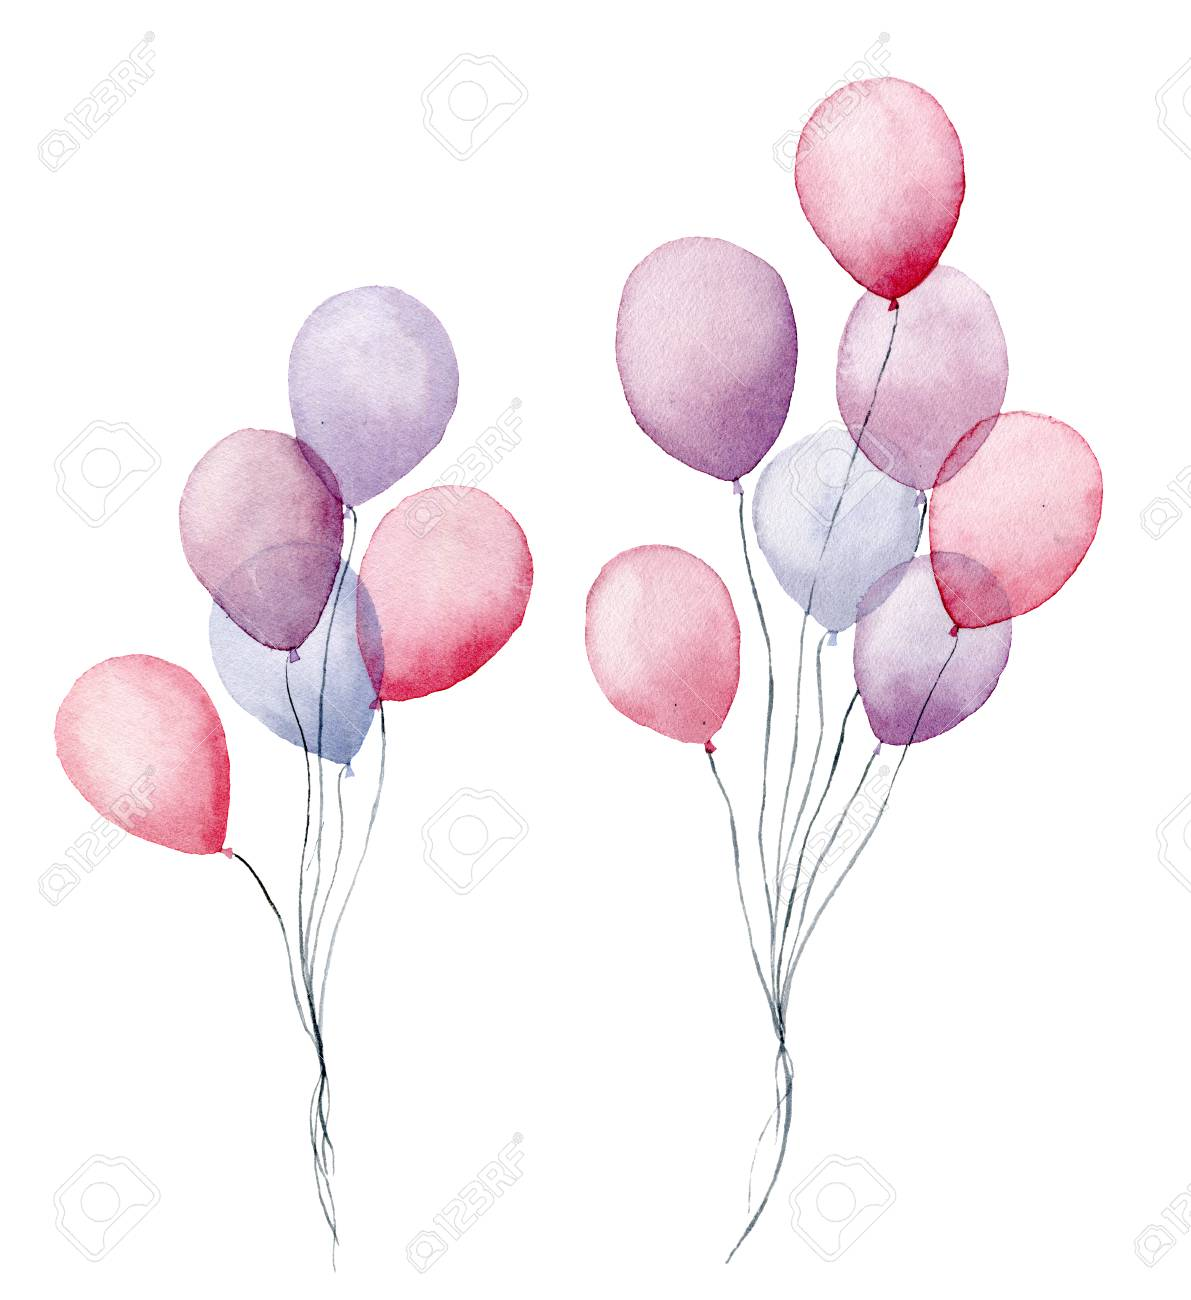 Watercolor air balloons. Hand painted pack of party pink, blue, purple balloons isolated on white background. Greeting decor - 105292524